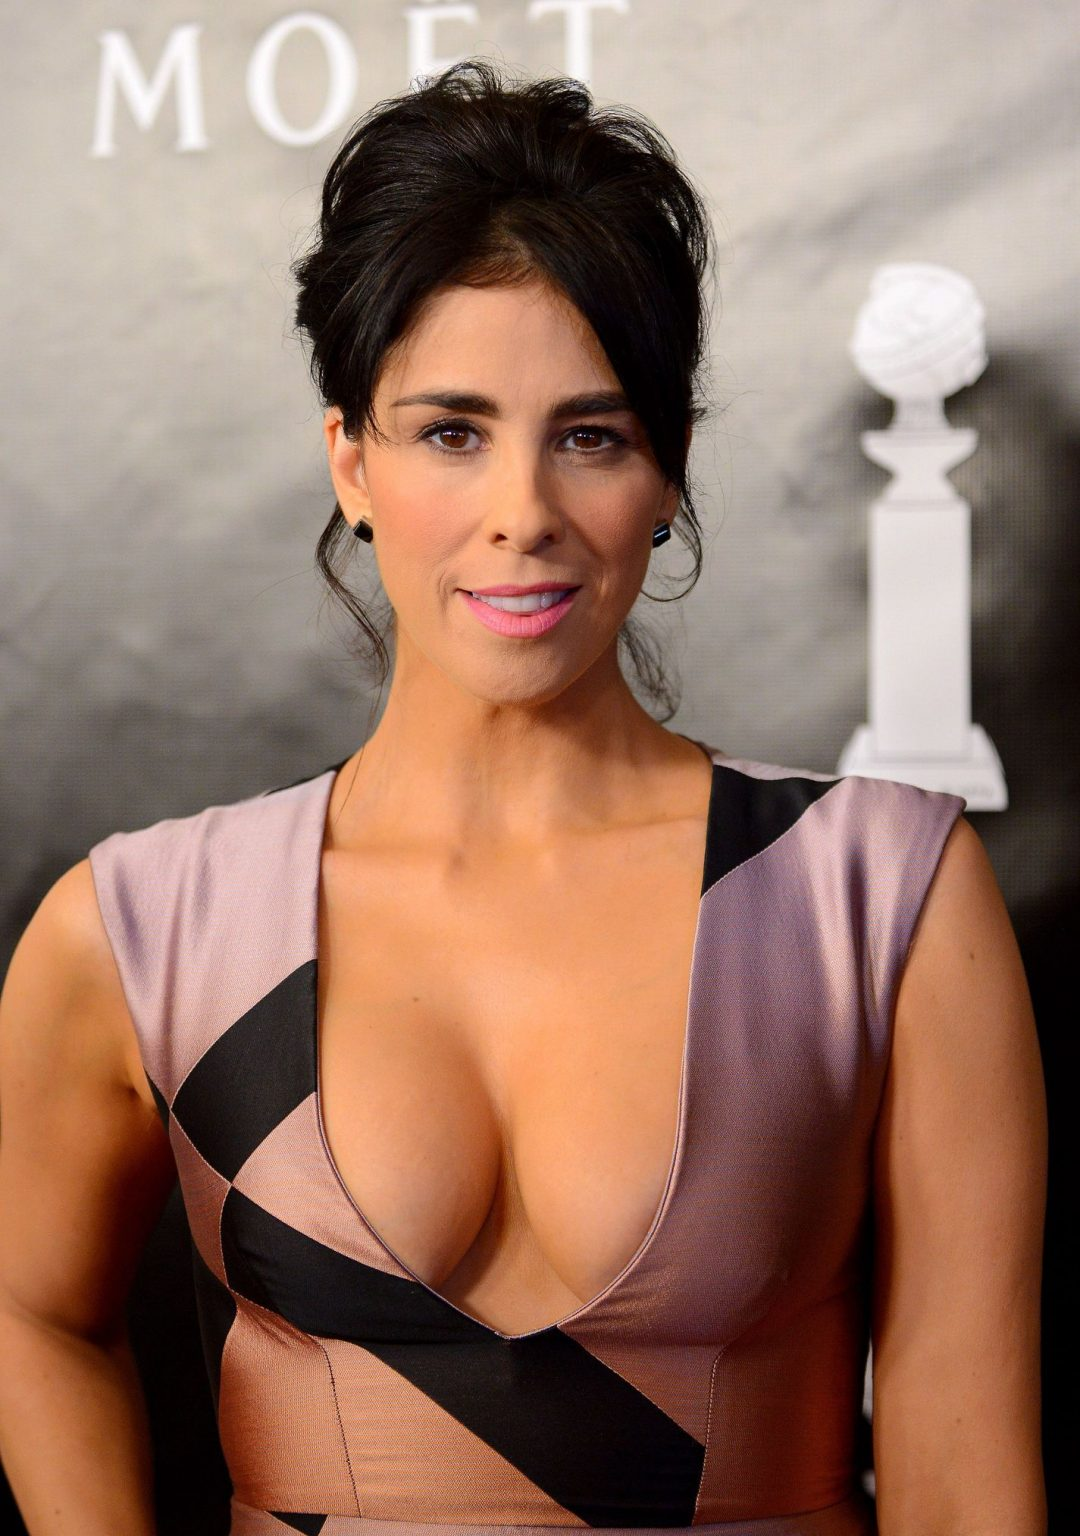 MILFy Brunette Sarah Silverman Showcasing Her Boobs in Public | #TheFappening Girls